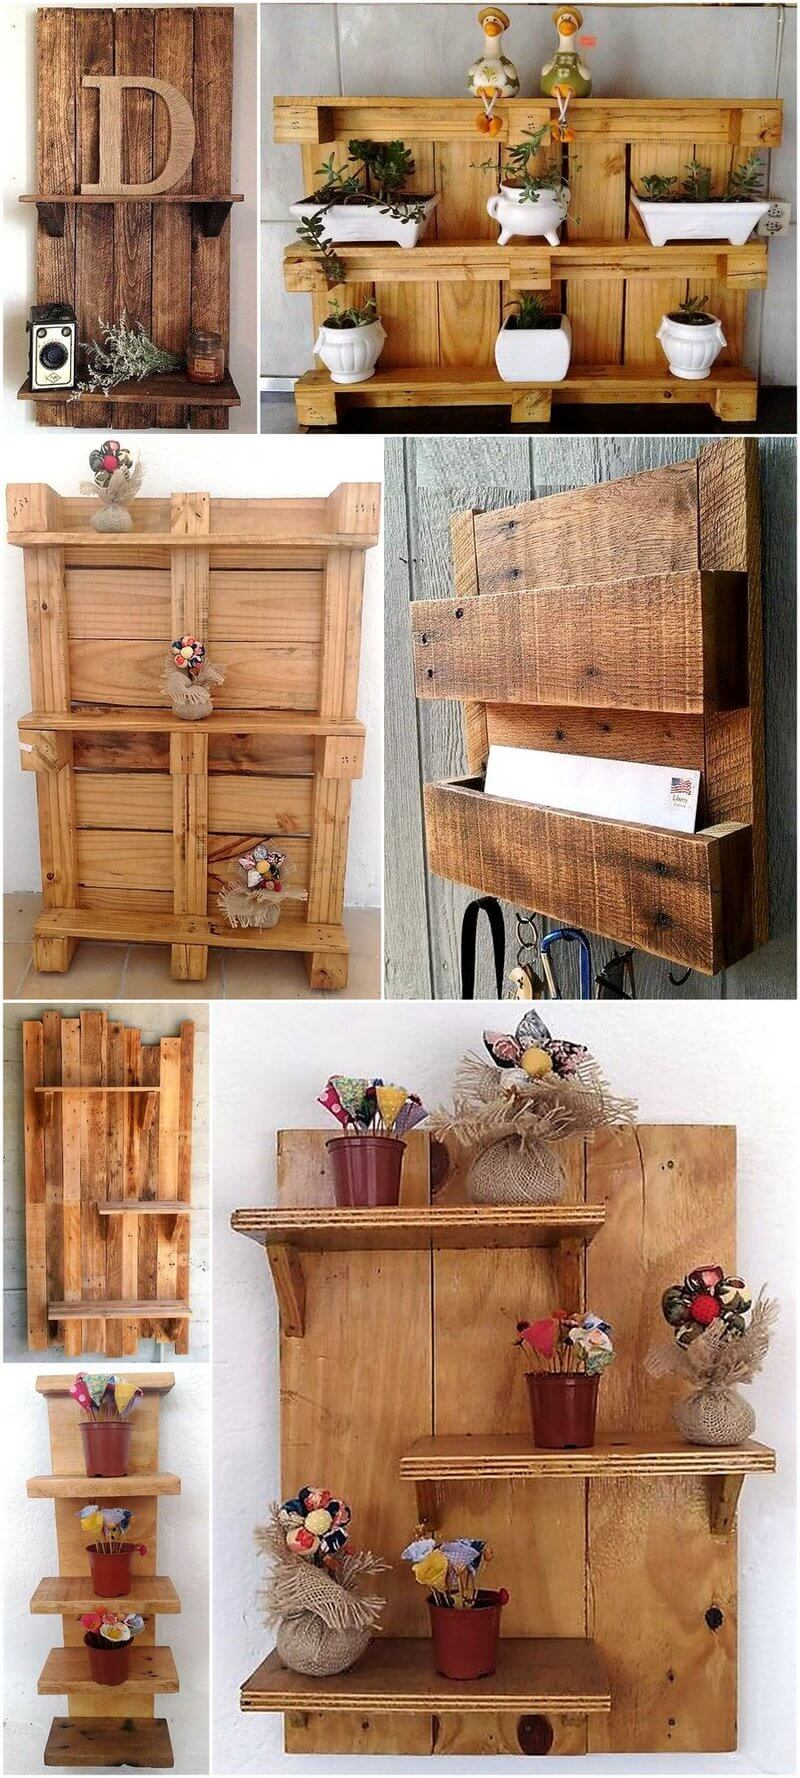 pallet shelving art